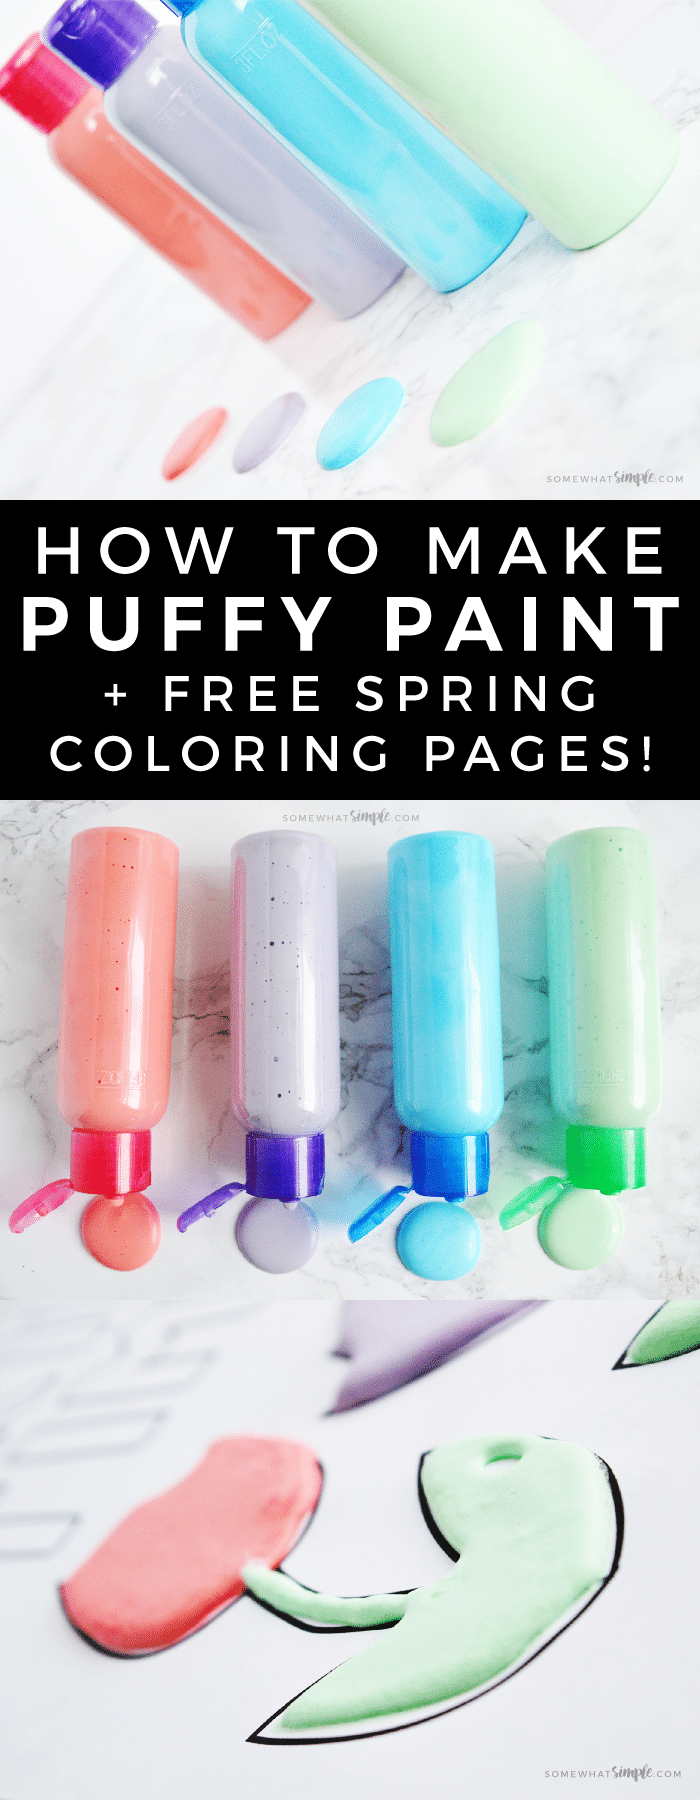 How To make Puffy Paint + Free Spring Coloring Pages! Using just a few supplies you have laying around the house, kids will love making their own puffy paint and using them with our  fun spring coloring pages!